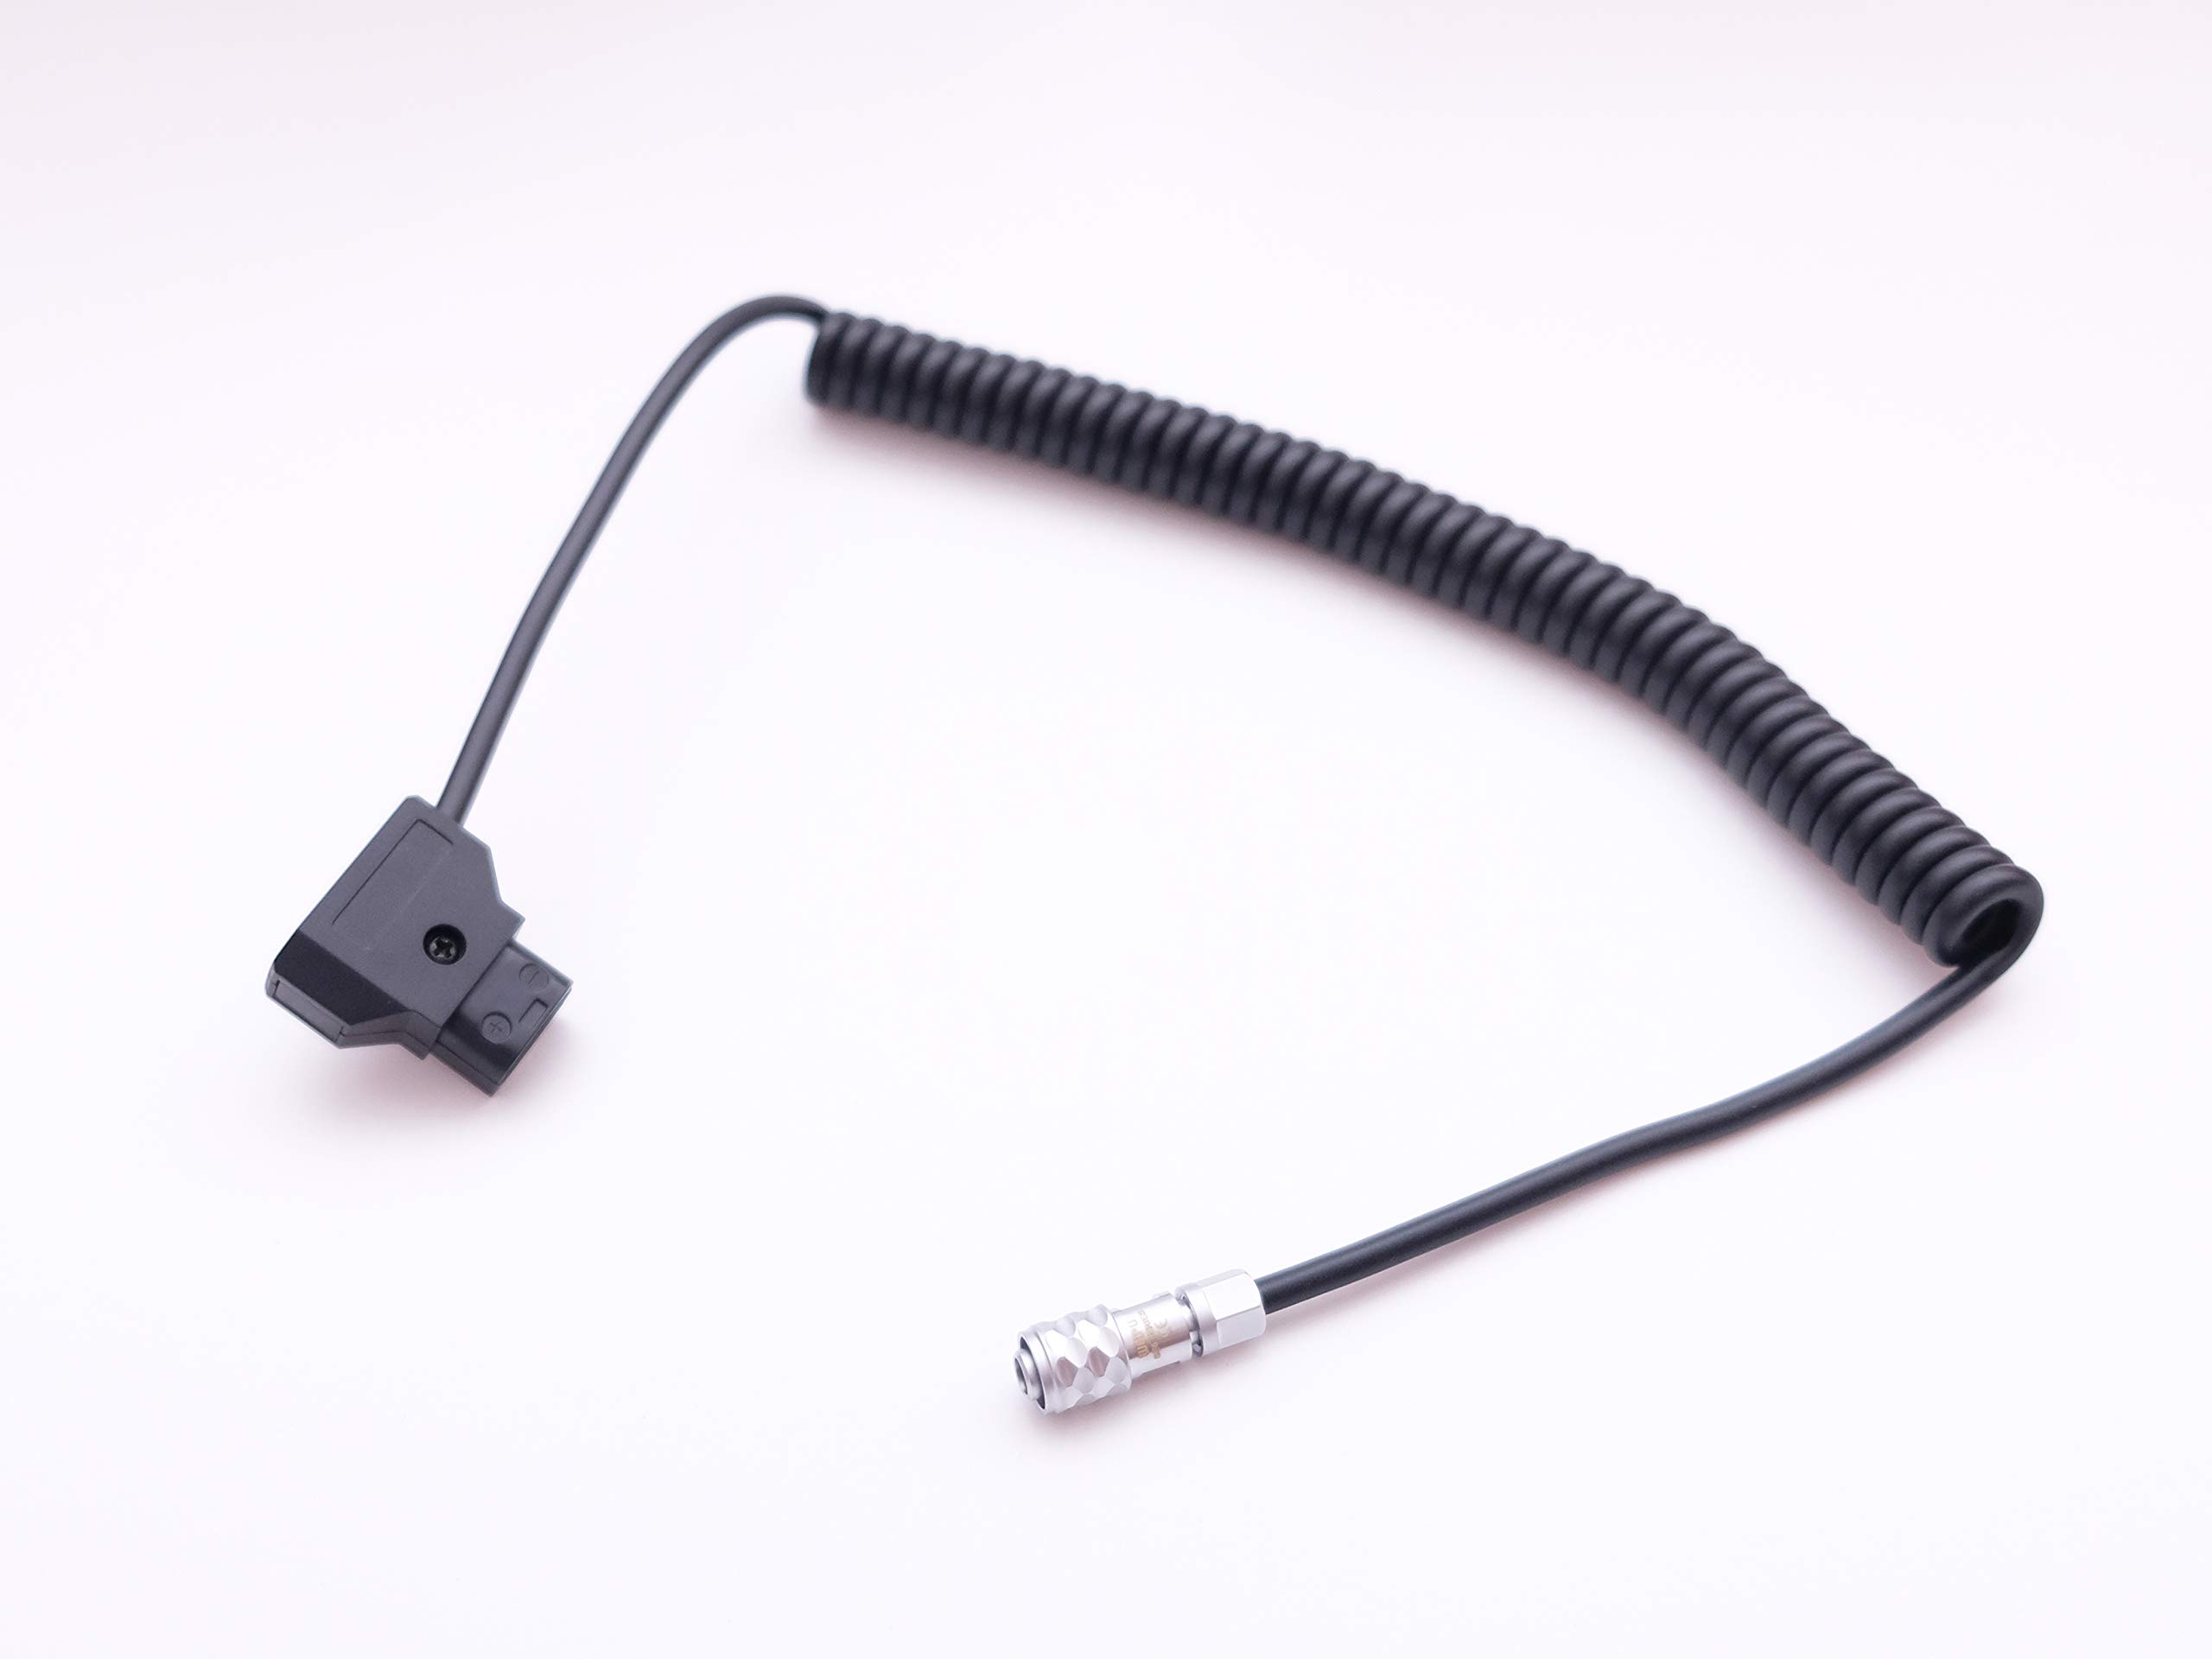 D-Tap DTap Power Cable Coiled Cable for BMPCC 4K Blackmagic Pocket Cinema Camera